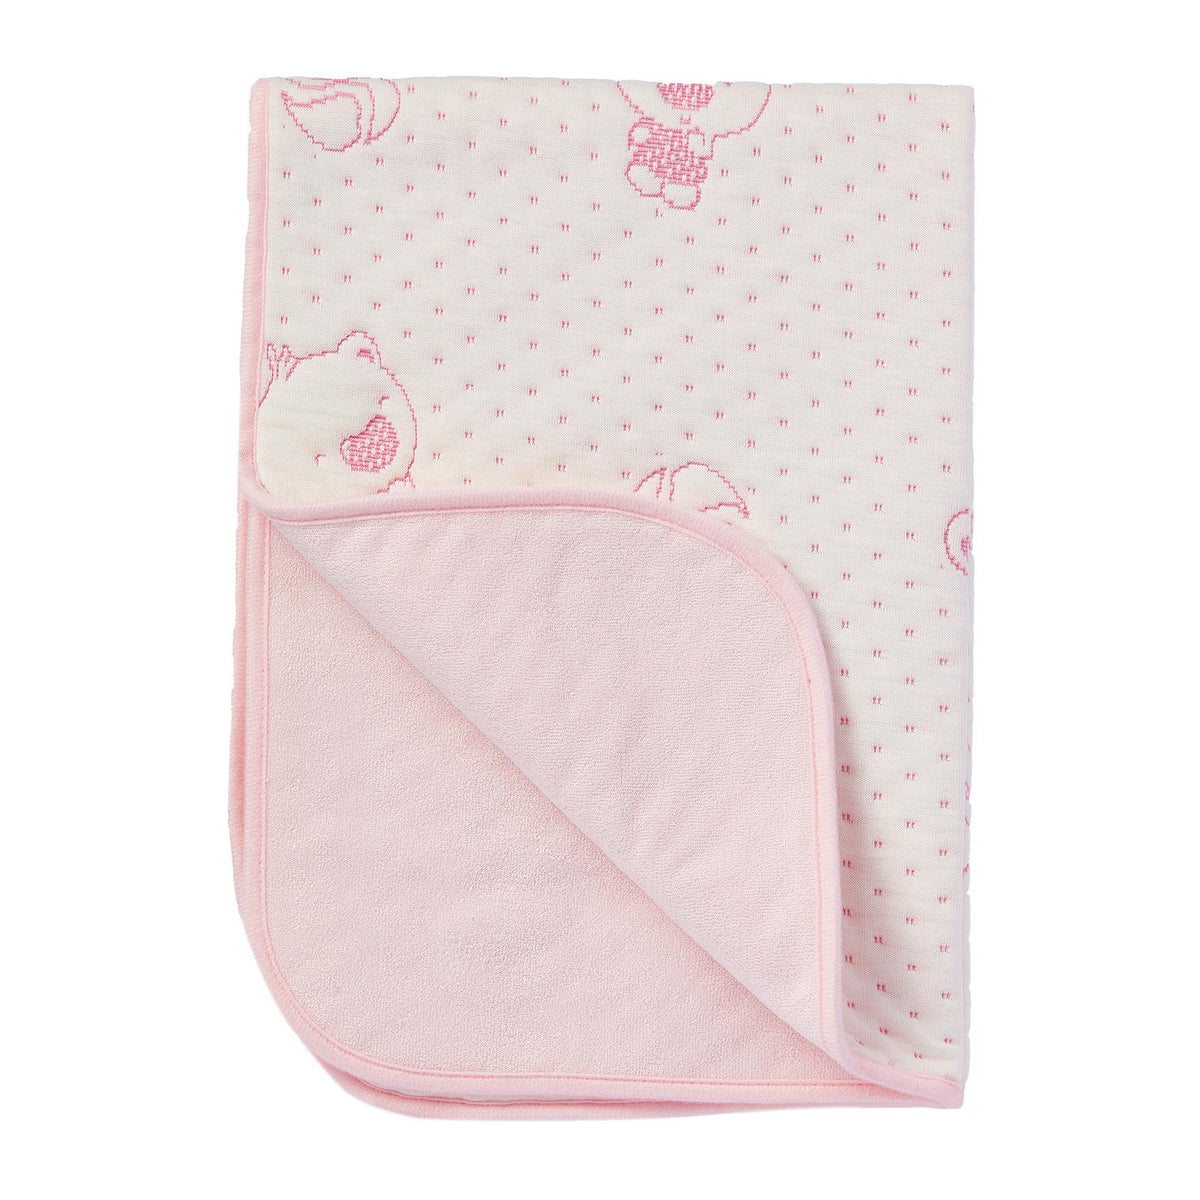 LoveSprings Reversible Bamboo Fiber Waterproof Changing mat